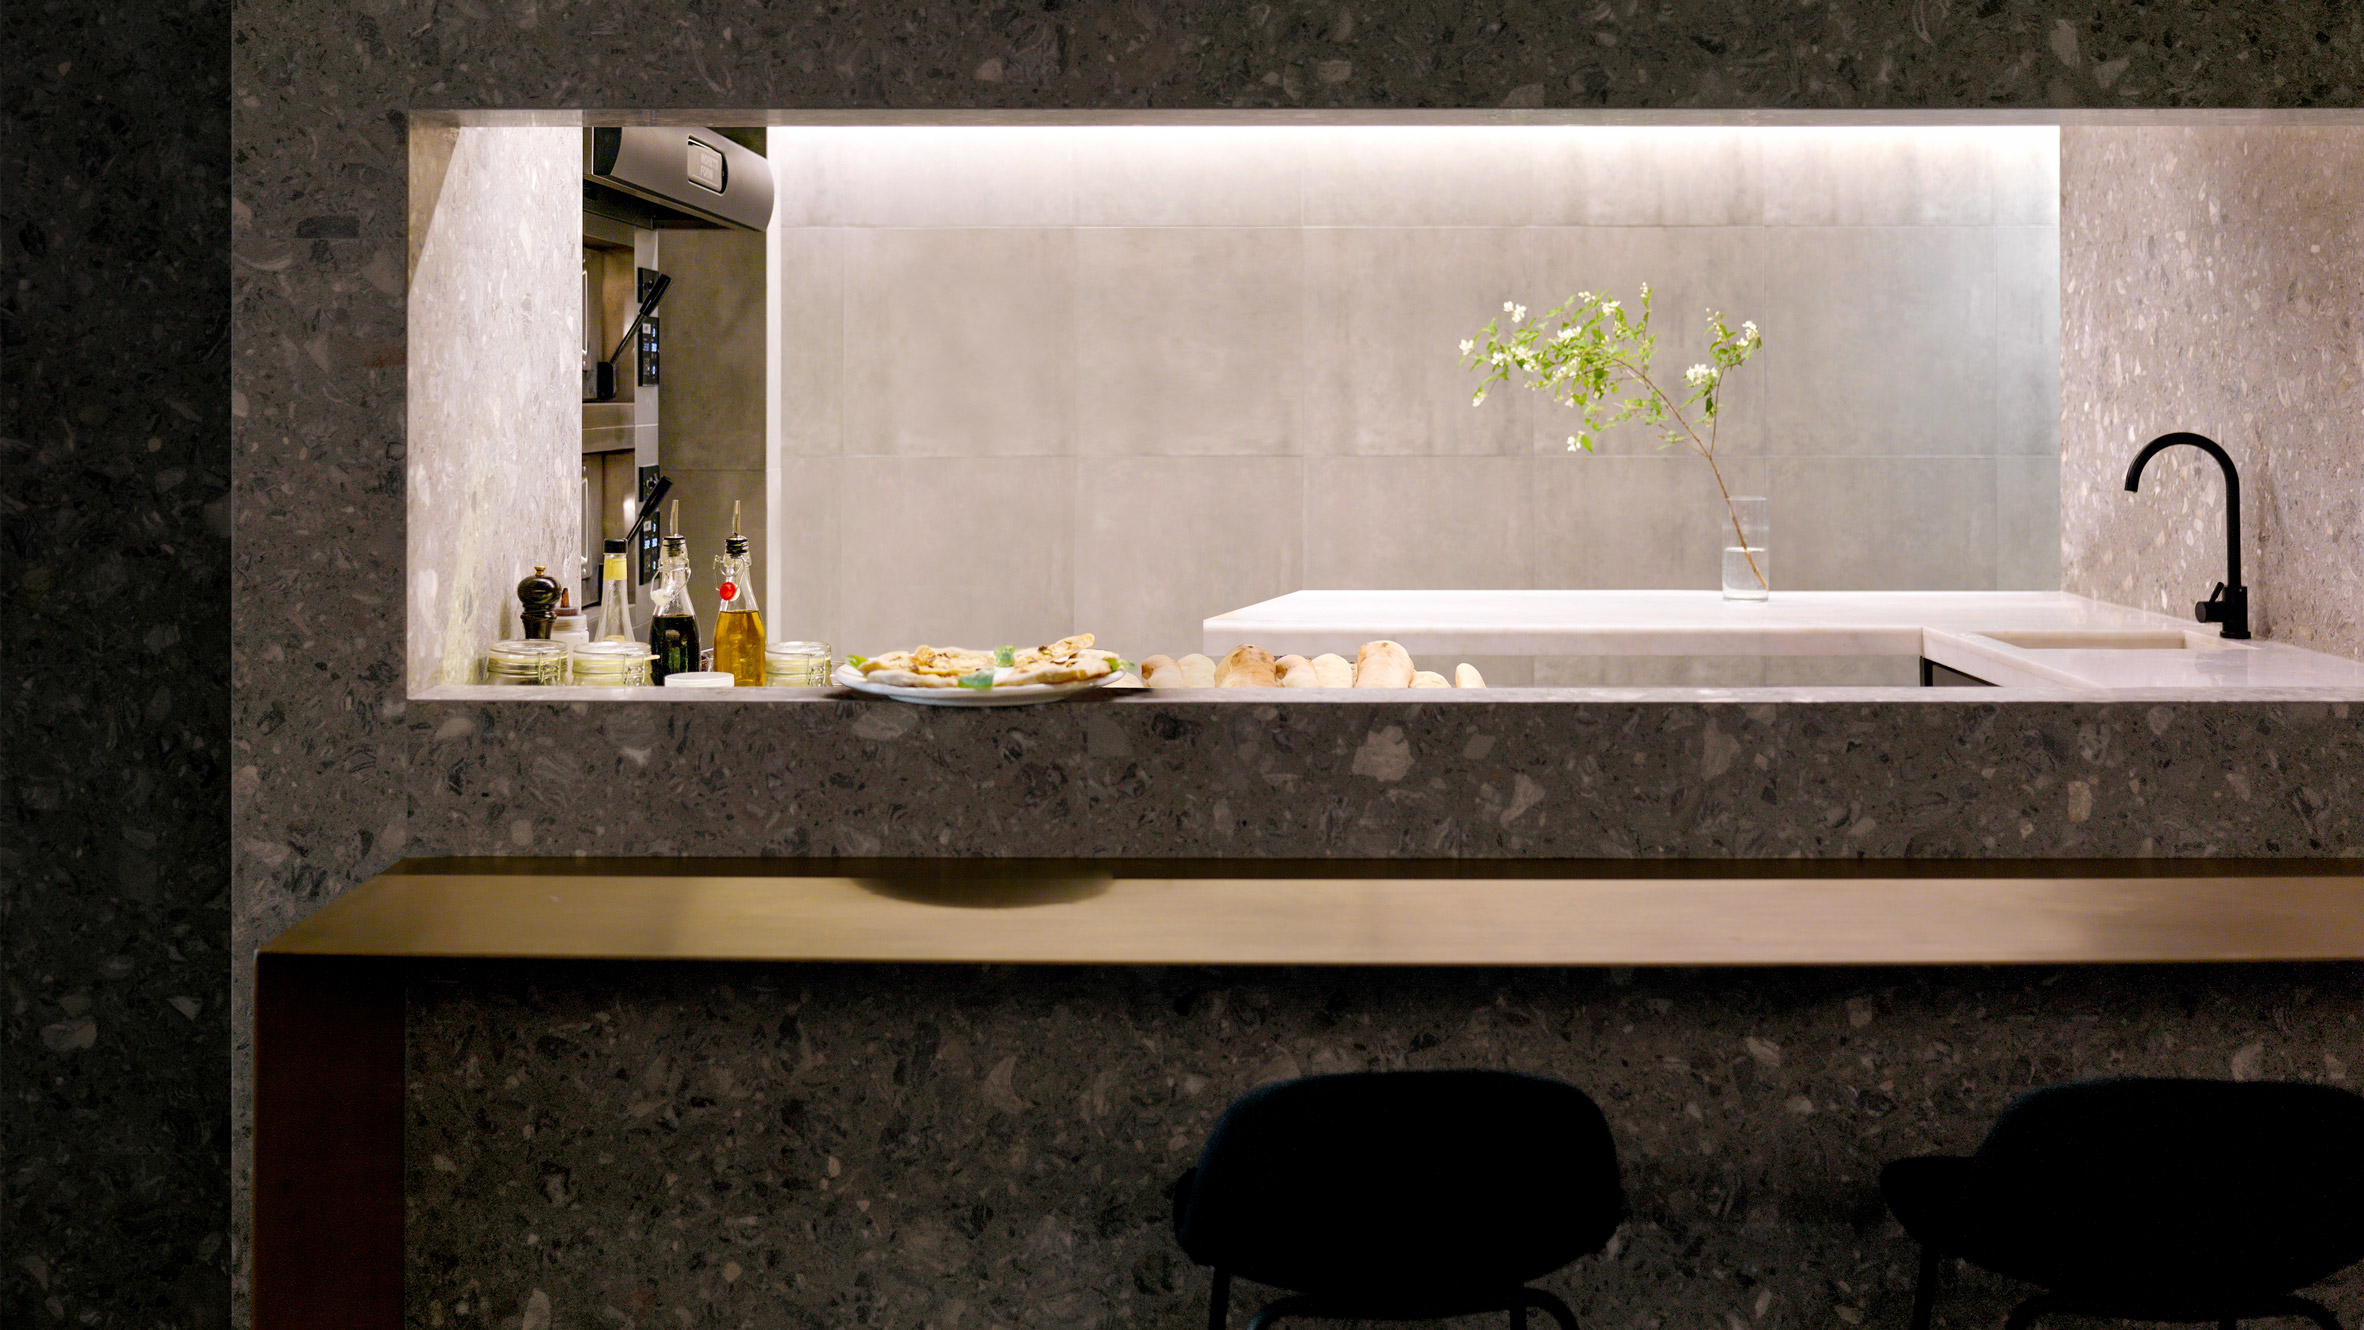 lievito-mddm-studio-interiors-restaurants-beijing-china_dezeen_hero-1